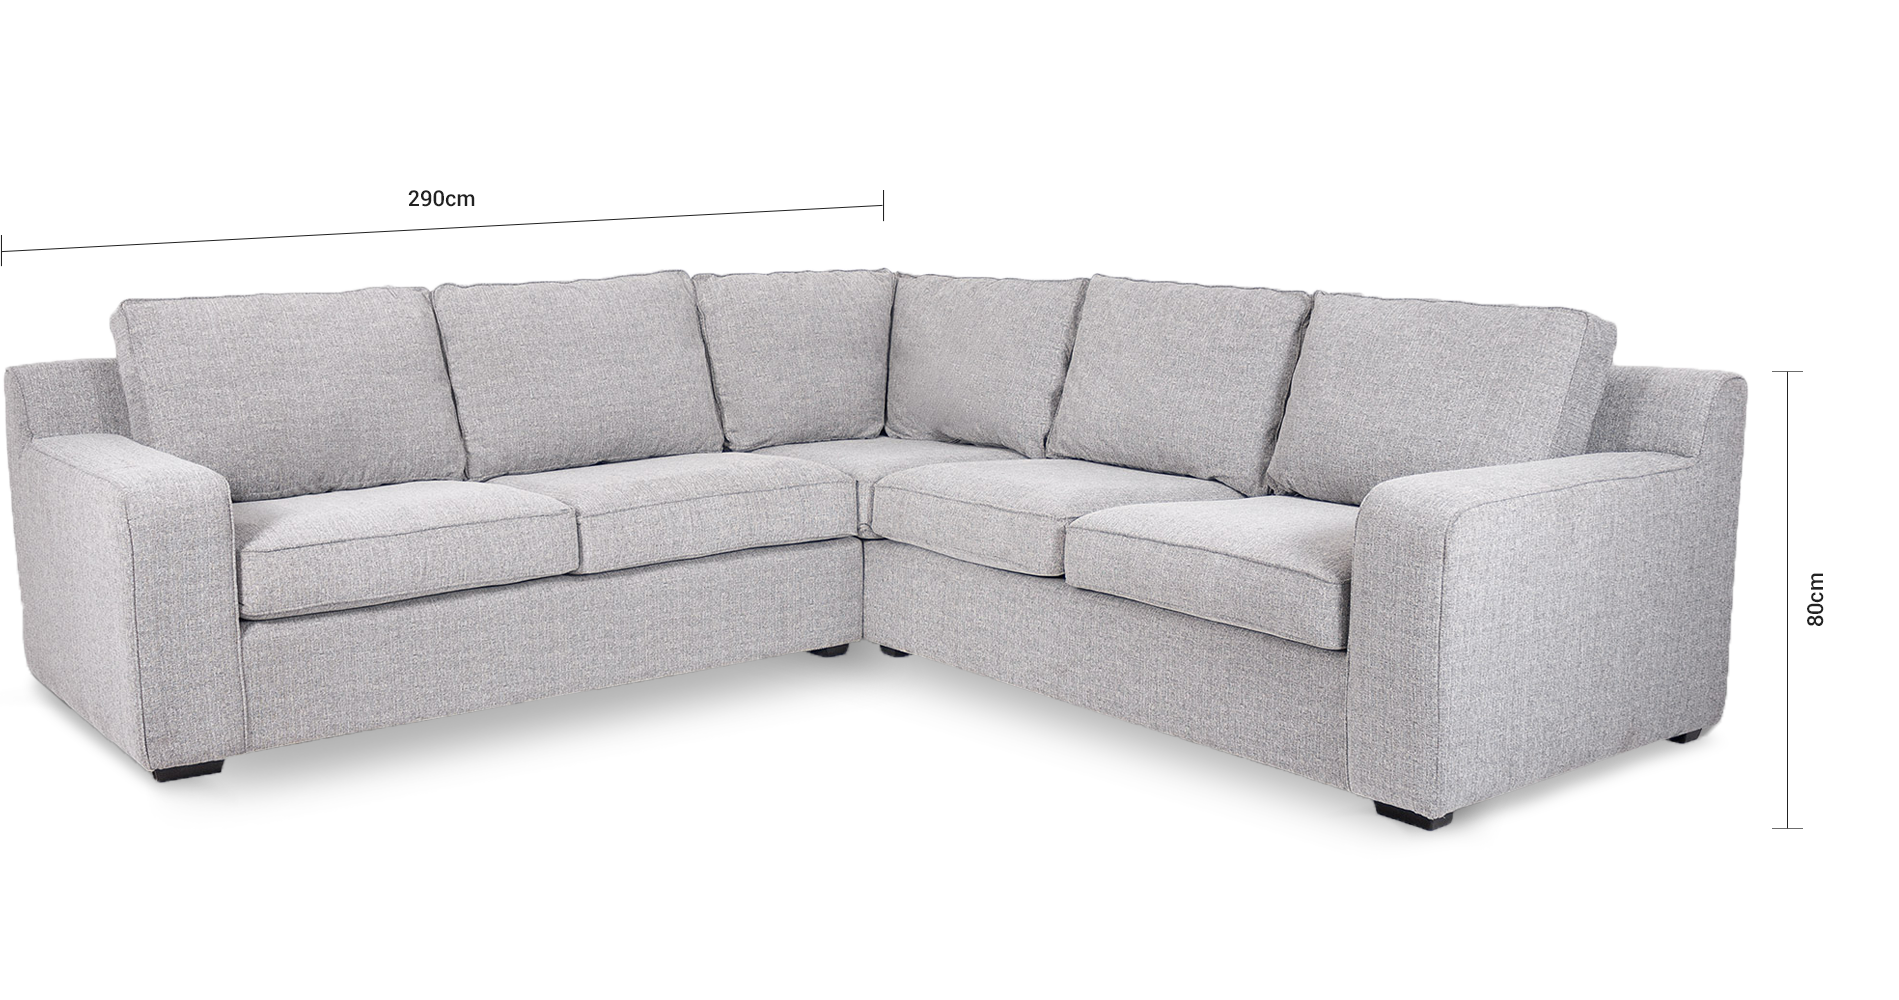 Lodge Fully Upholstered Corner Couch